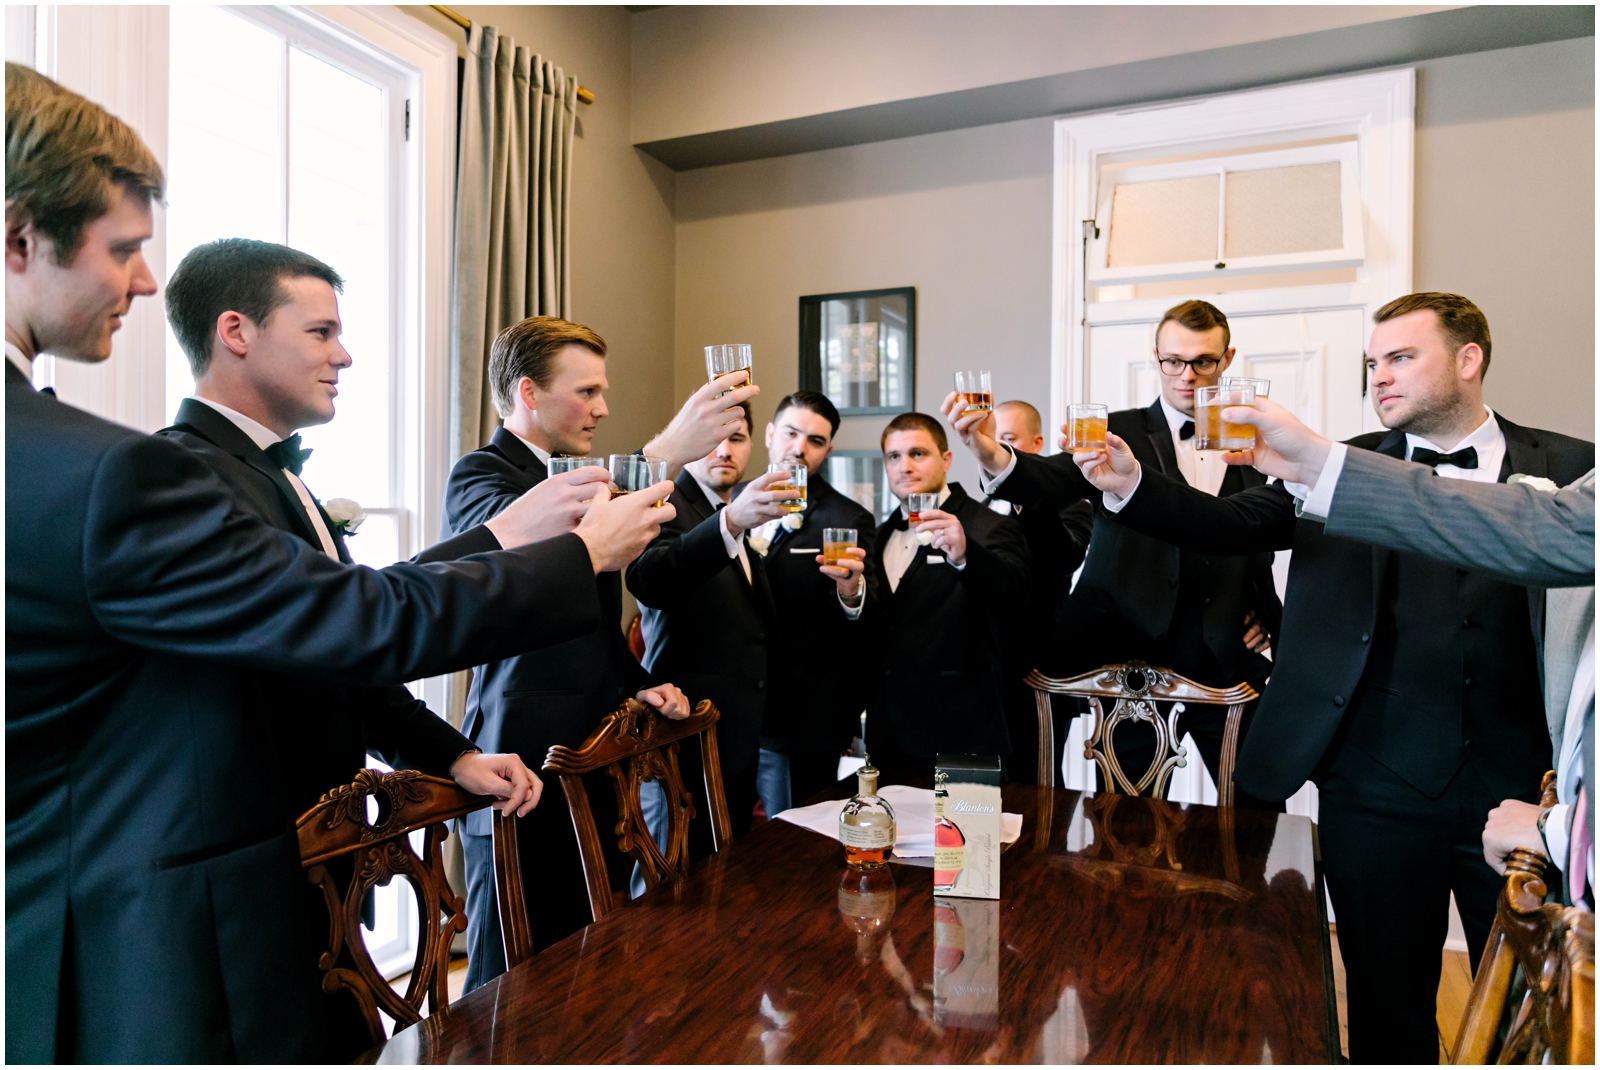 Groomsmen and groom making a toast before the wedding